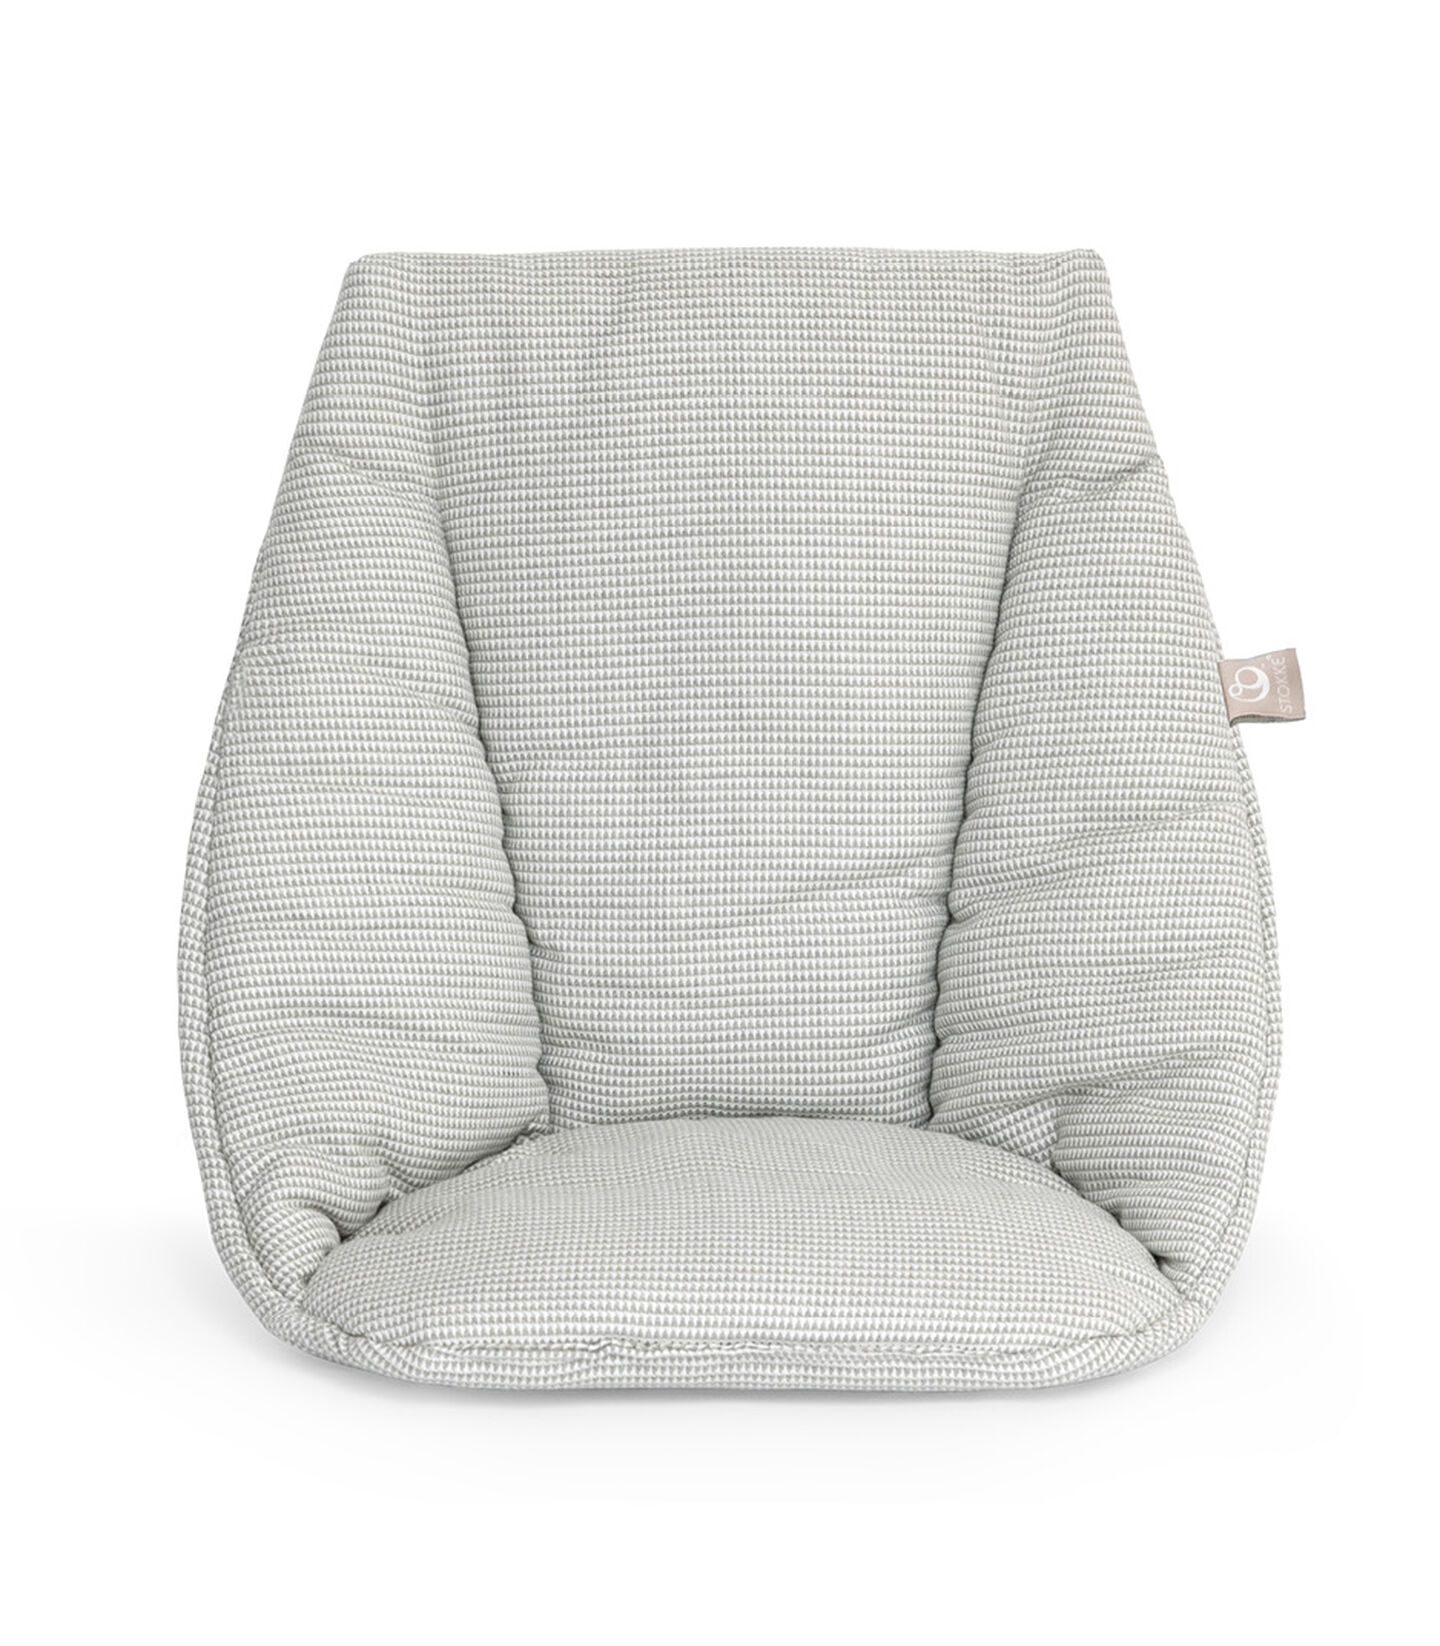 Tripp Trapp® Baby Cushion Nordic Grey. view 2